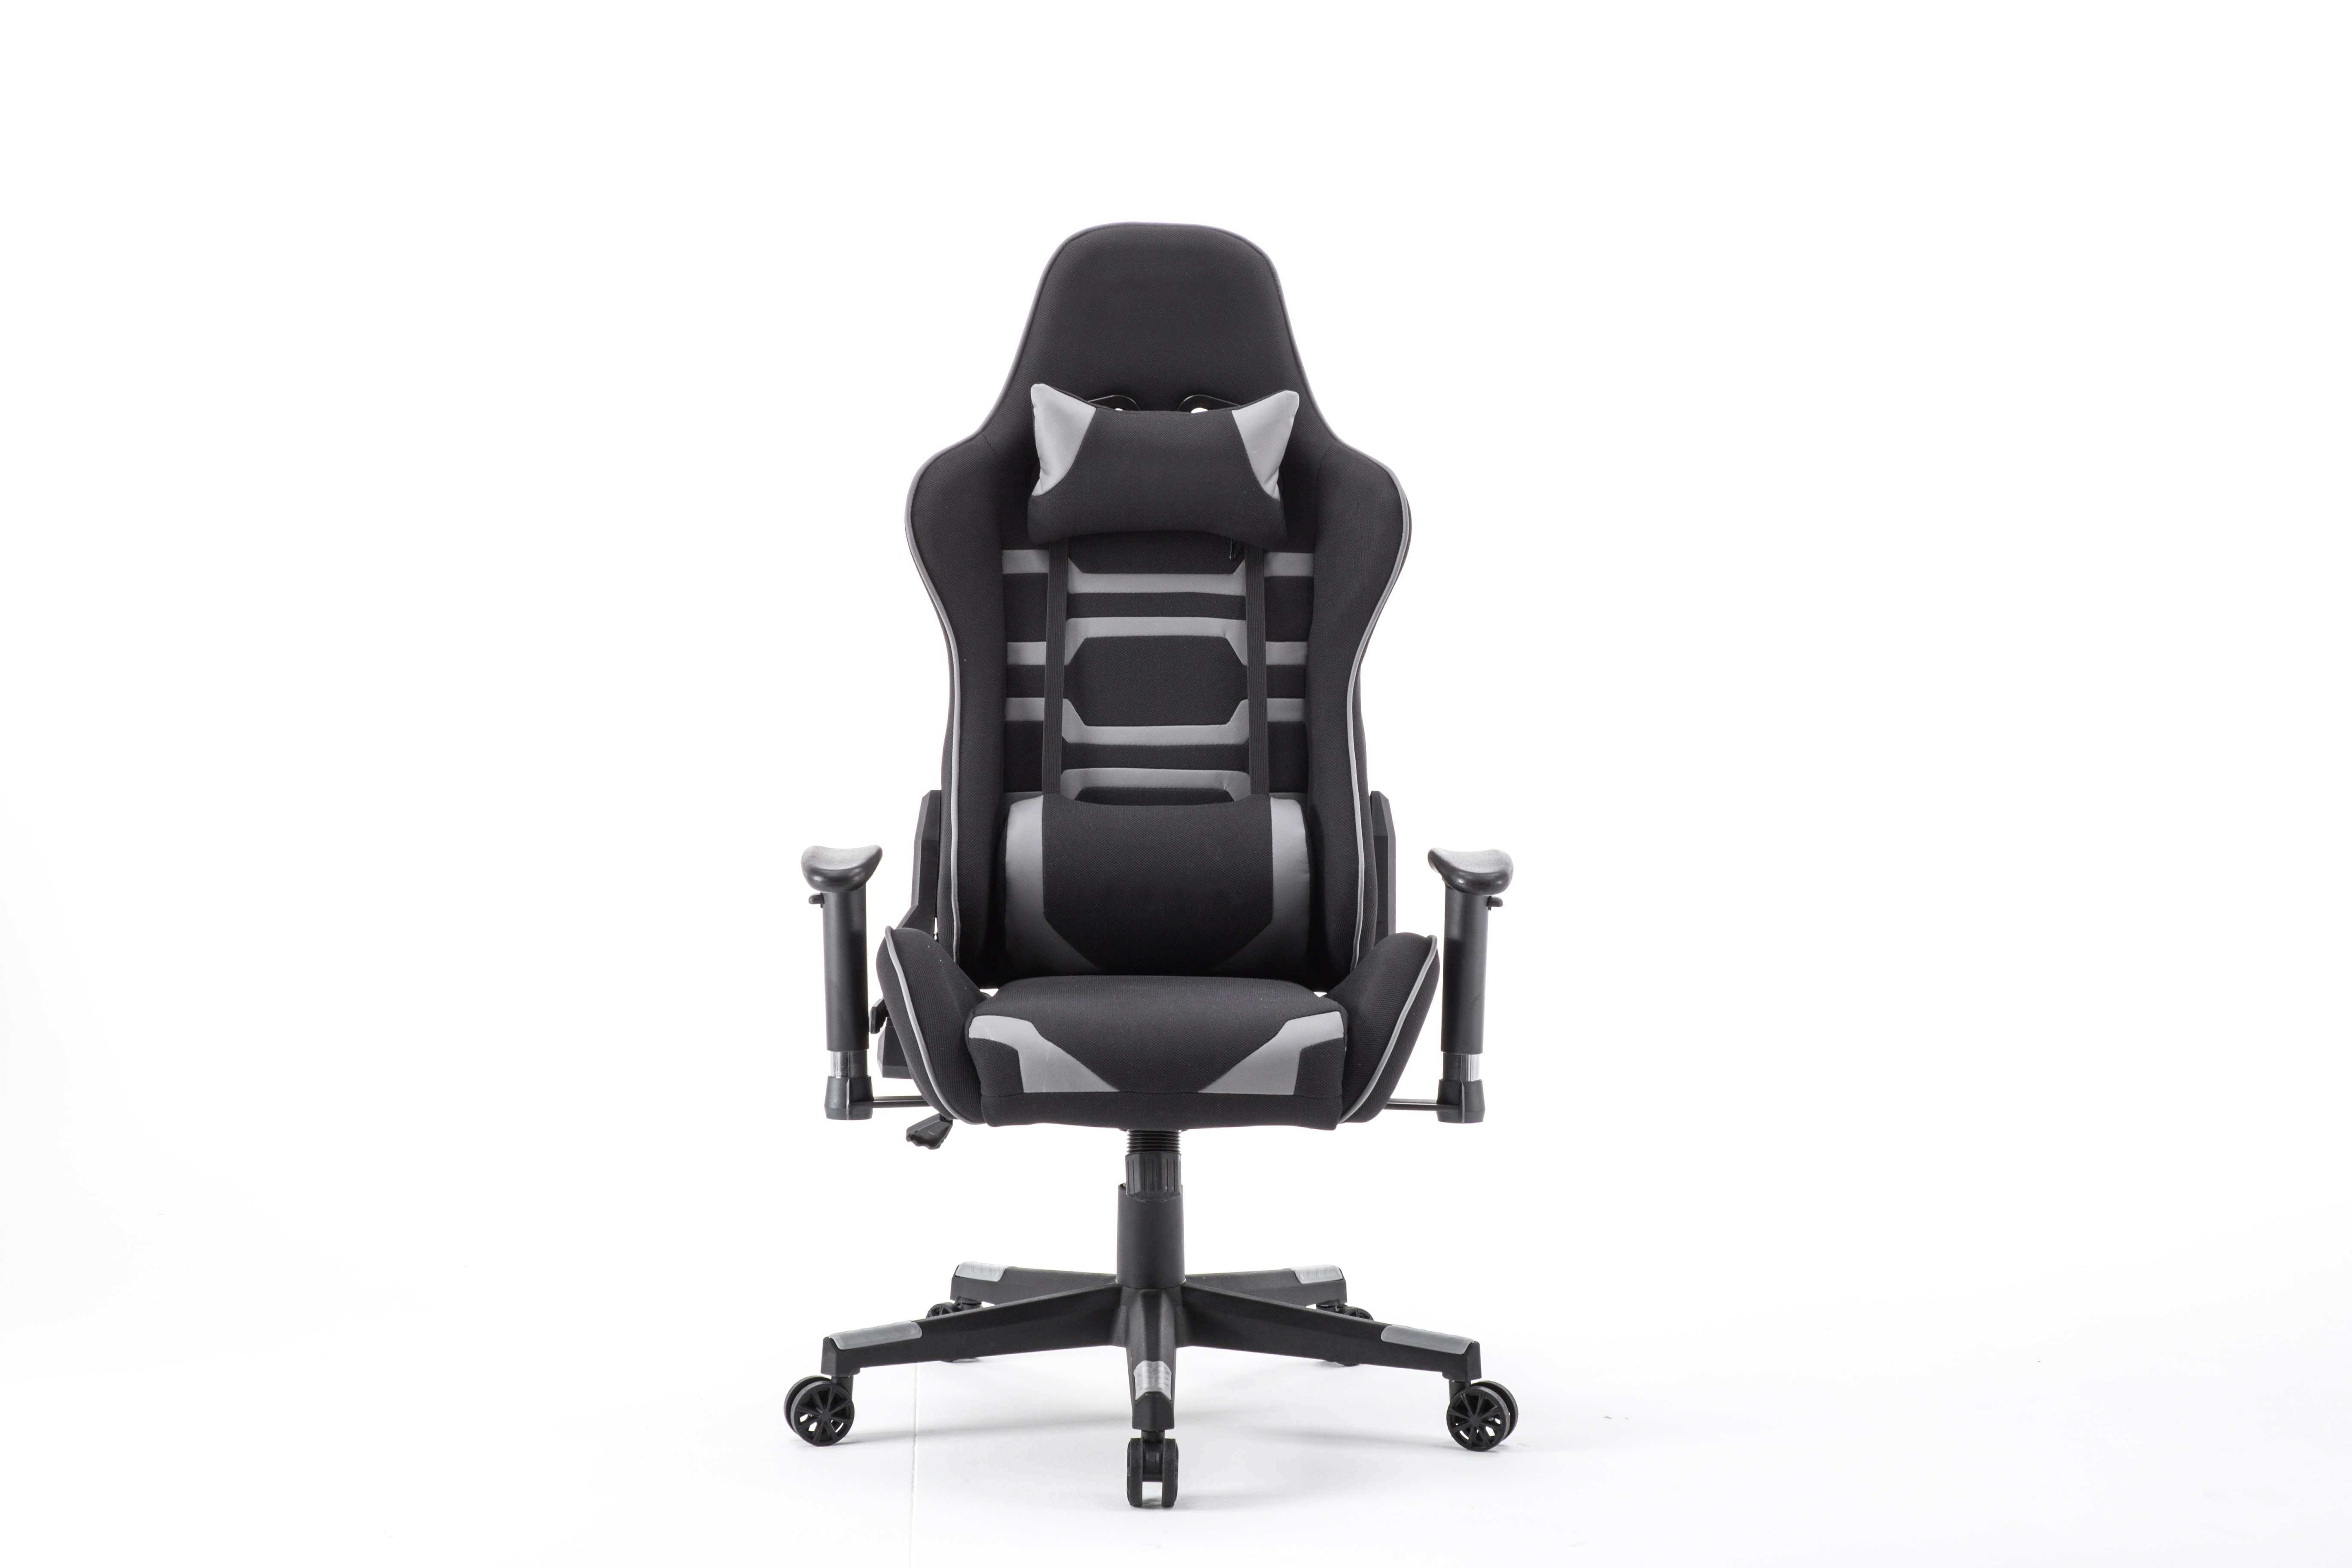 Picture of: China High Quality Custom Sports Video Game Car Seats And Recliners With Pedals China Gaming Chair Office Chair